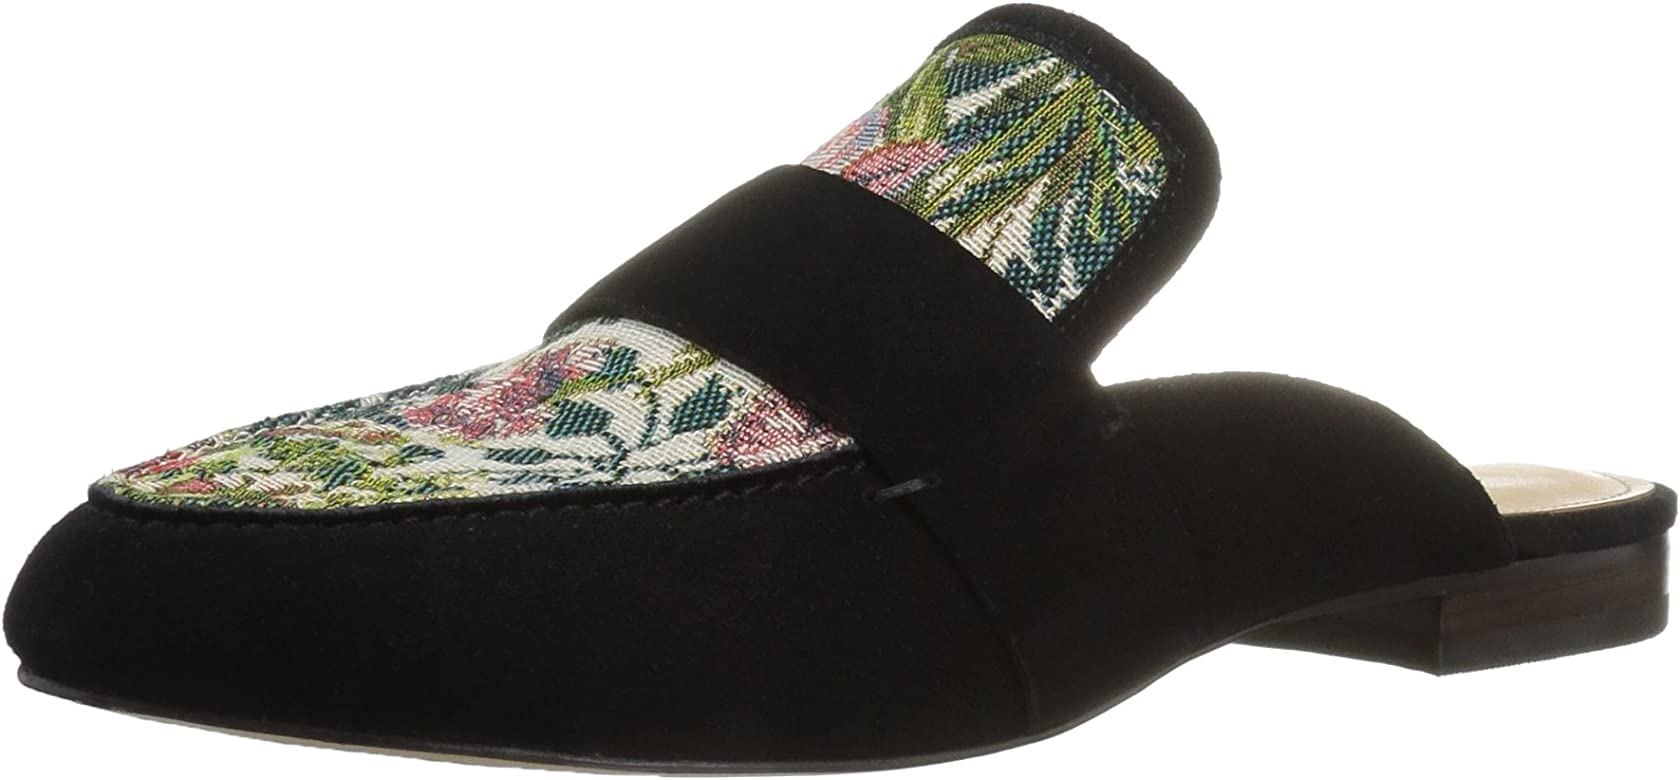 15843dc7f3823 Amazon Brand - The Fix Women's French Floral Tapestry Slide Slip-on Loafer,  Black